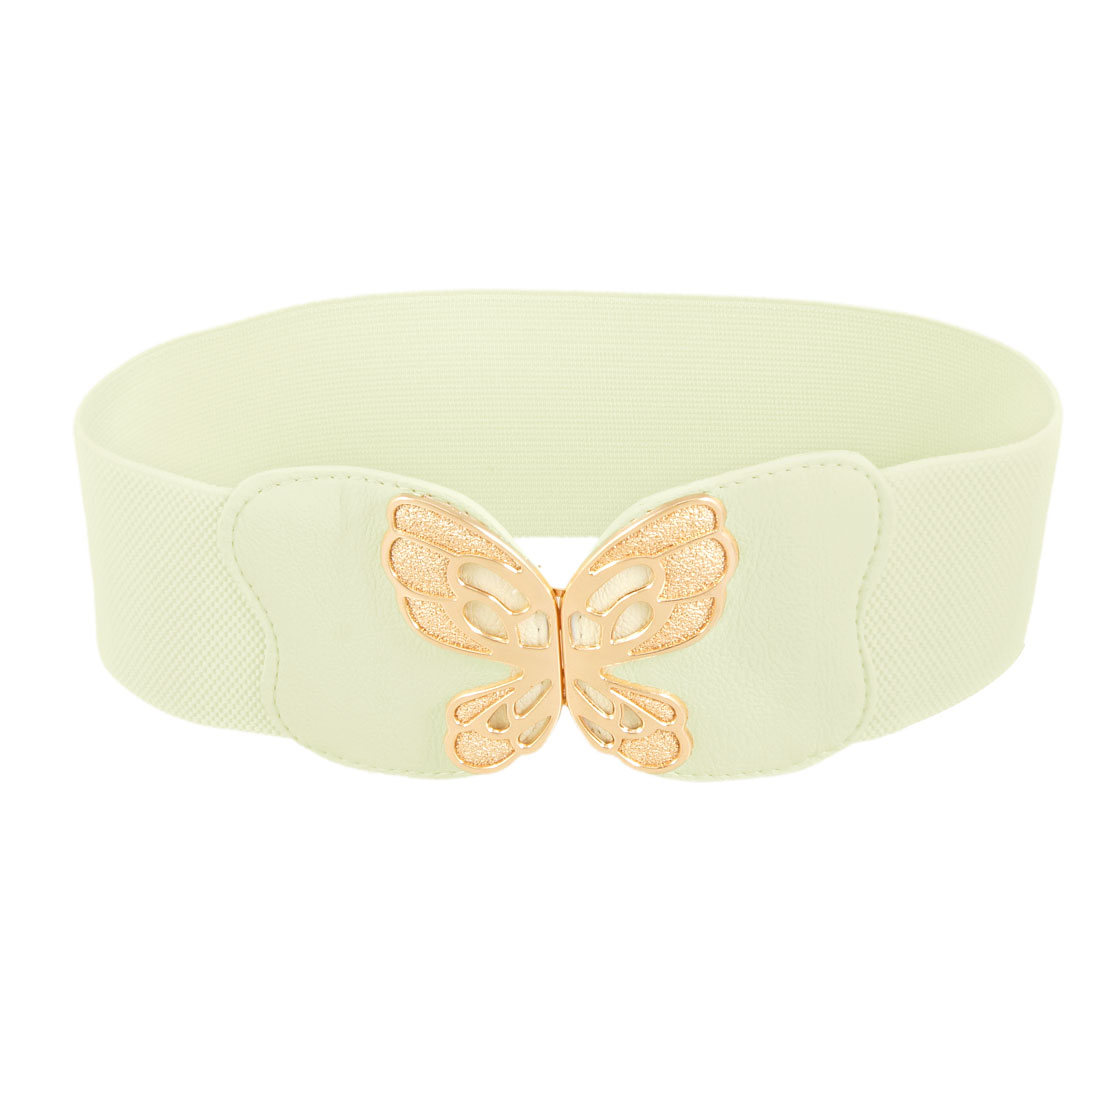 Gold Tone Butterfly Detail Interlocking Buckle Beige Stretch Waist Belt for Ladies